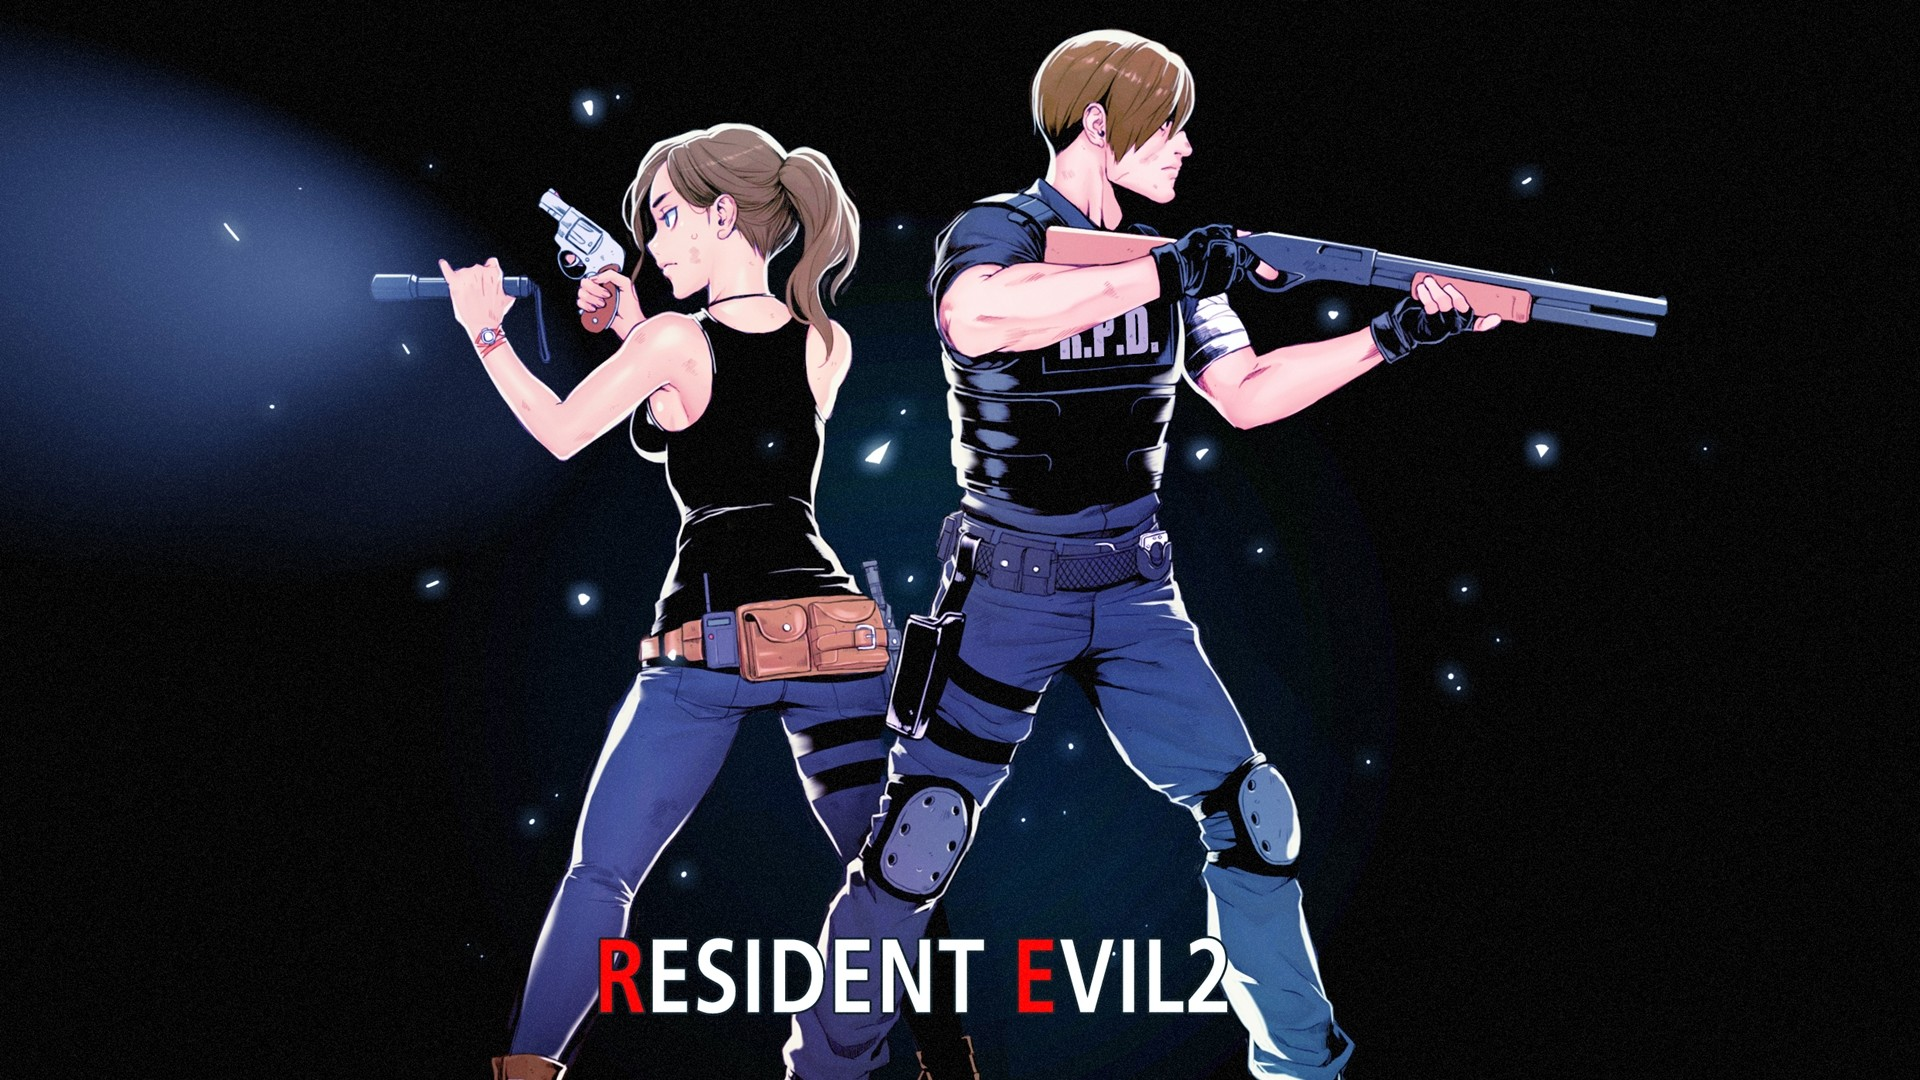 Res: 1920x1080, Wallpaper of Claire Redfield, Leon S. Kennedy, Resident Evil 2 background &  HD image